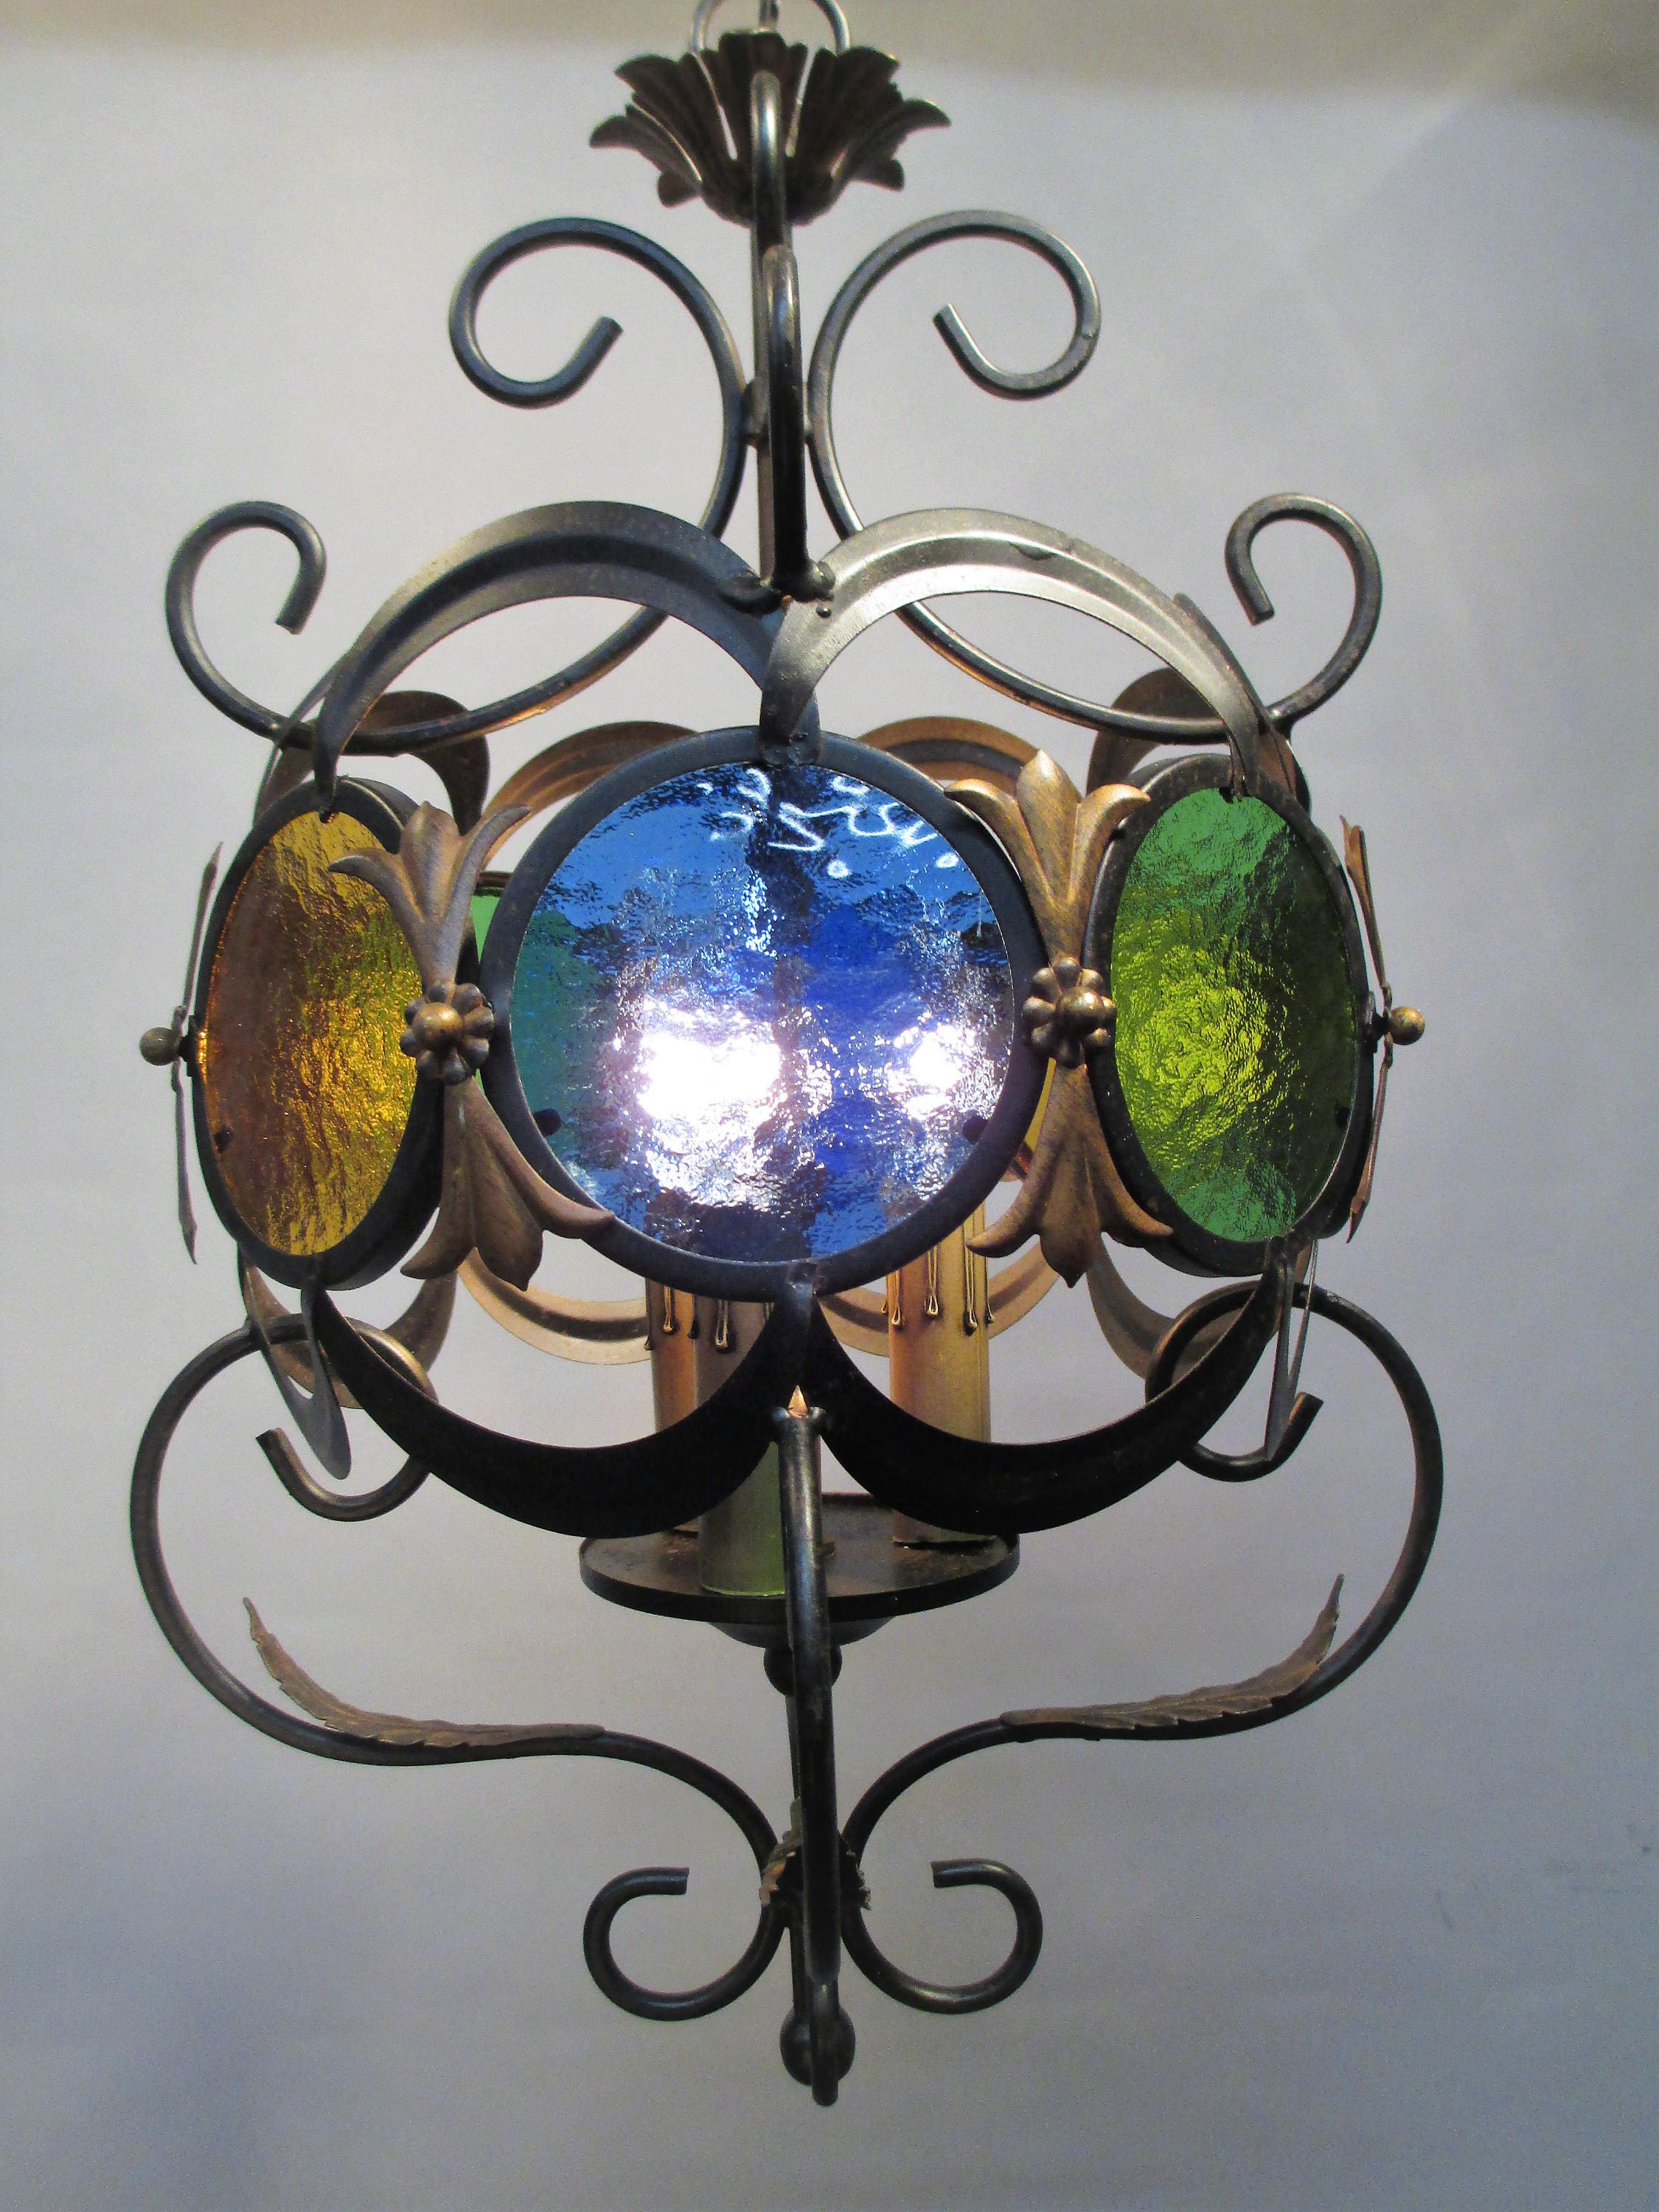 Vintage Antique Boho Chandelier Ceiling Light Italian Gothic